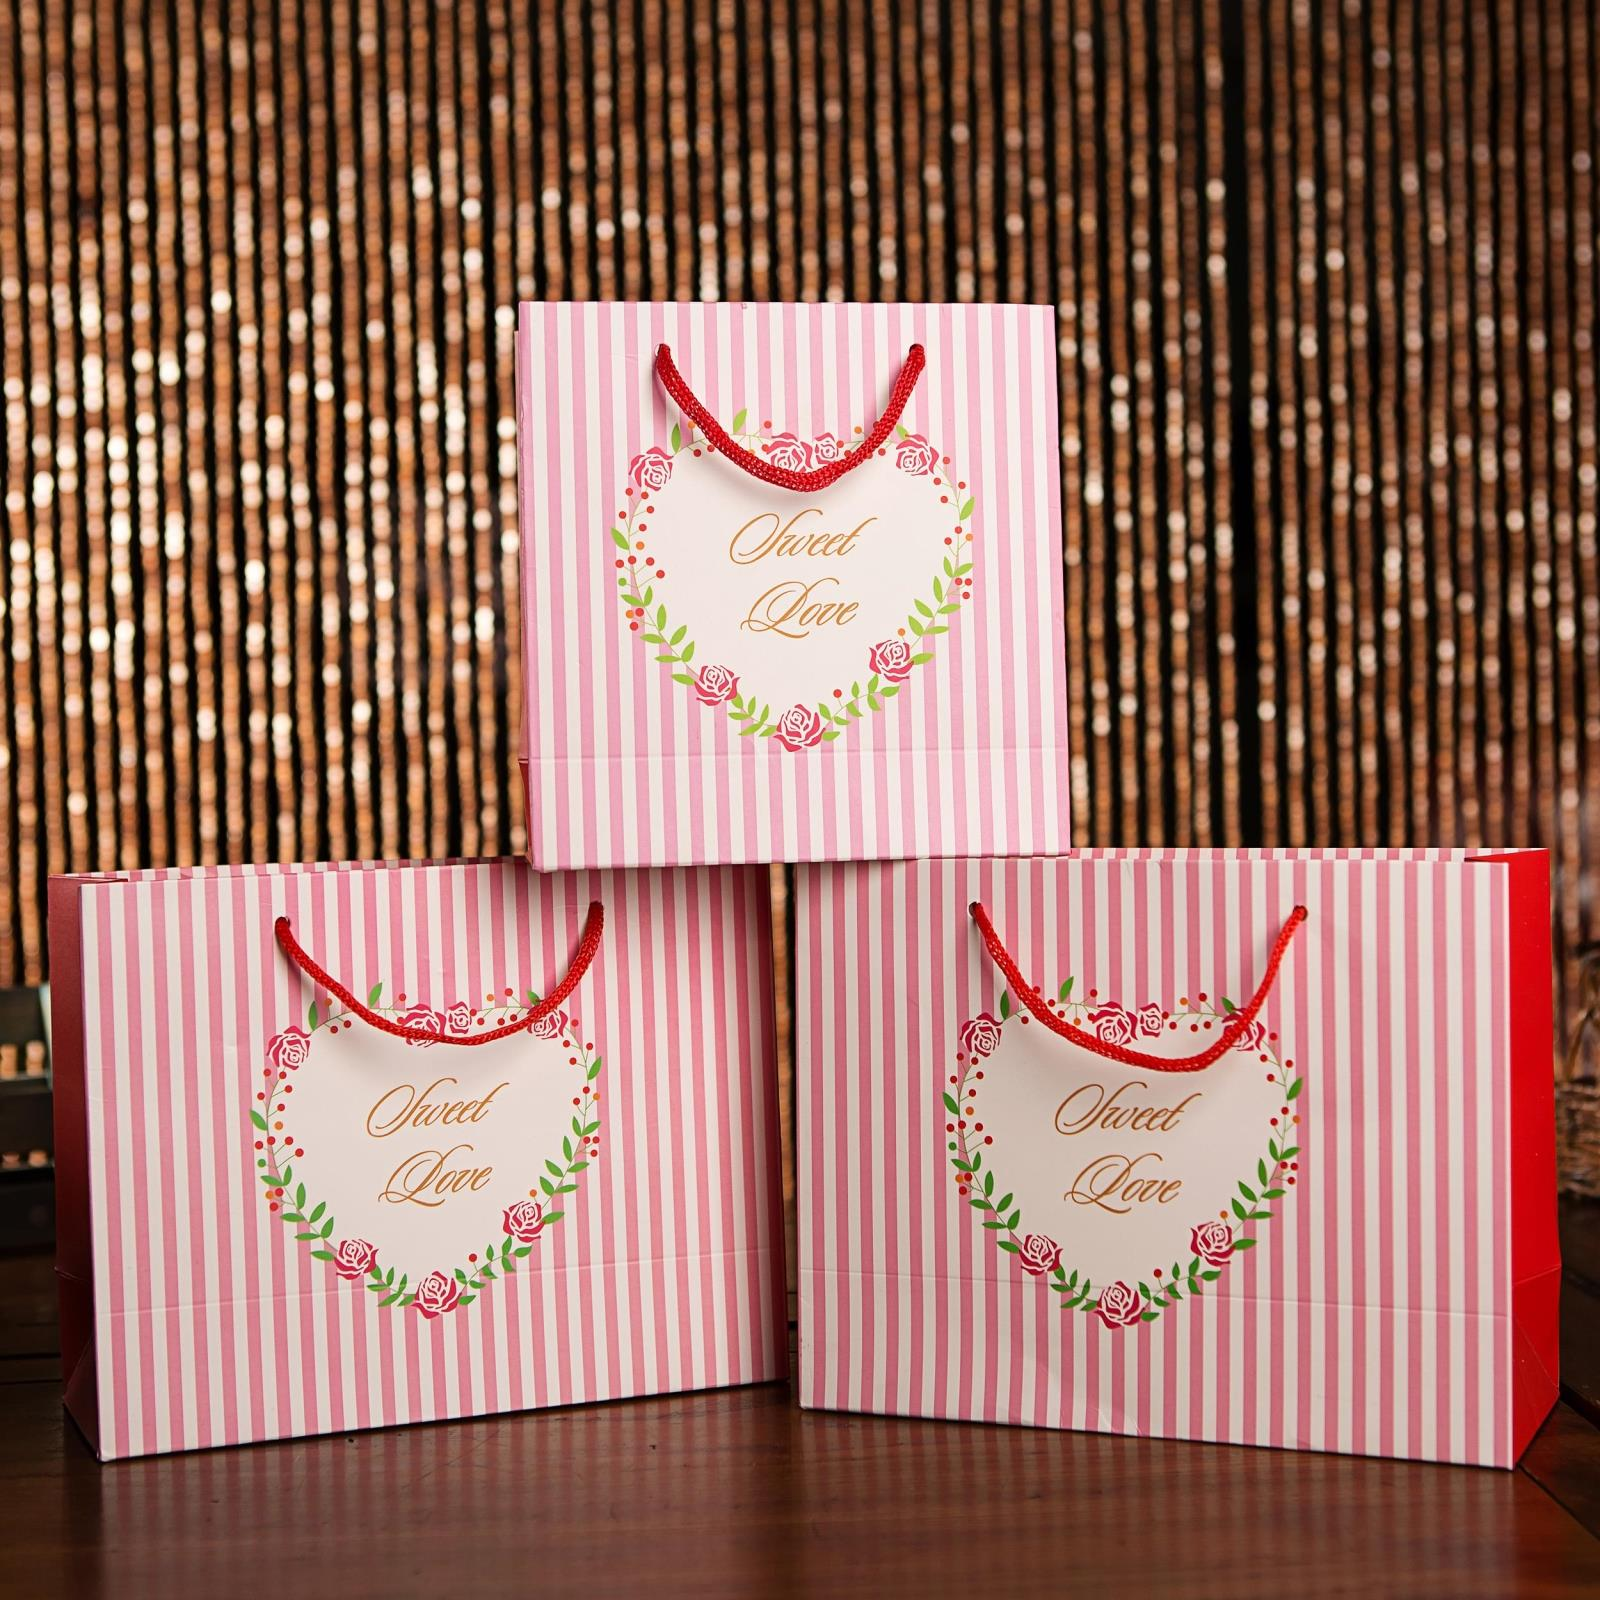 China China Wedding Bag, China China Wedding Bag Shopping Guide at ...